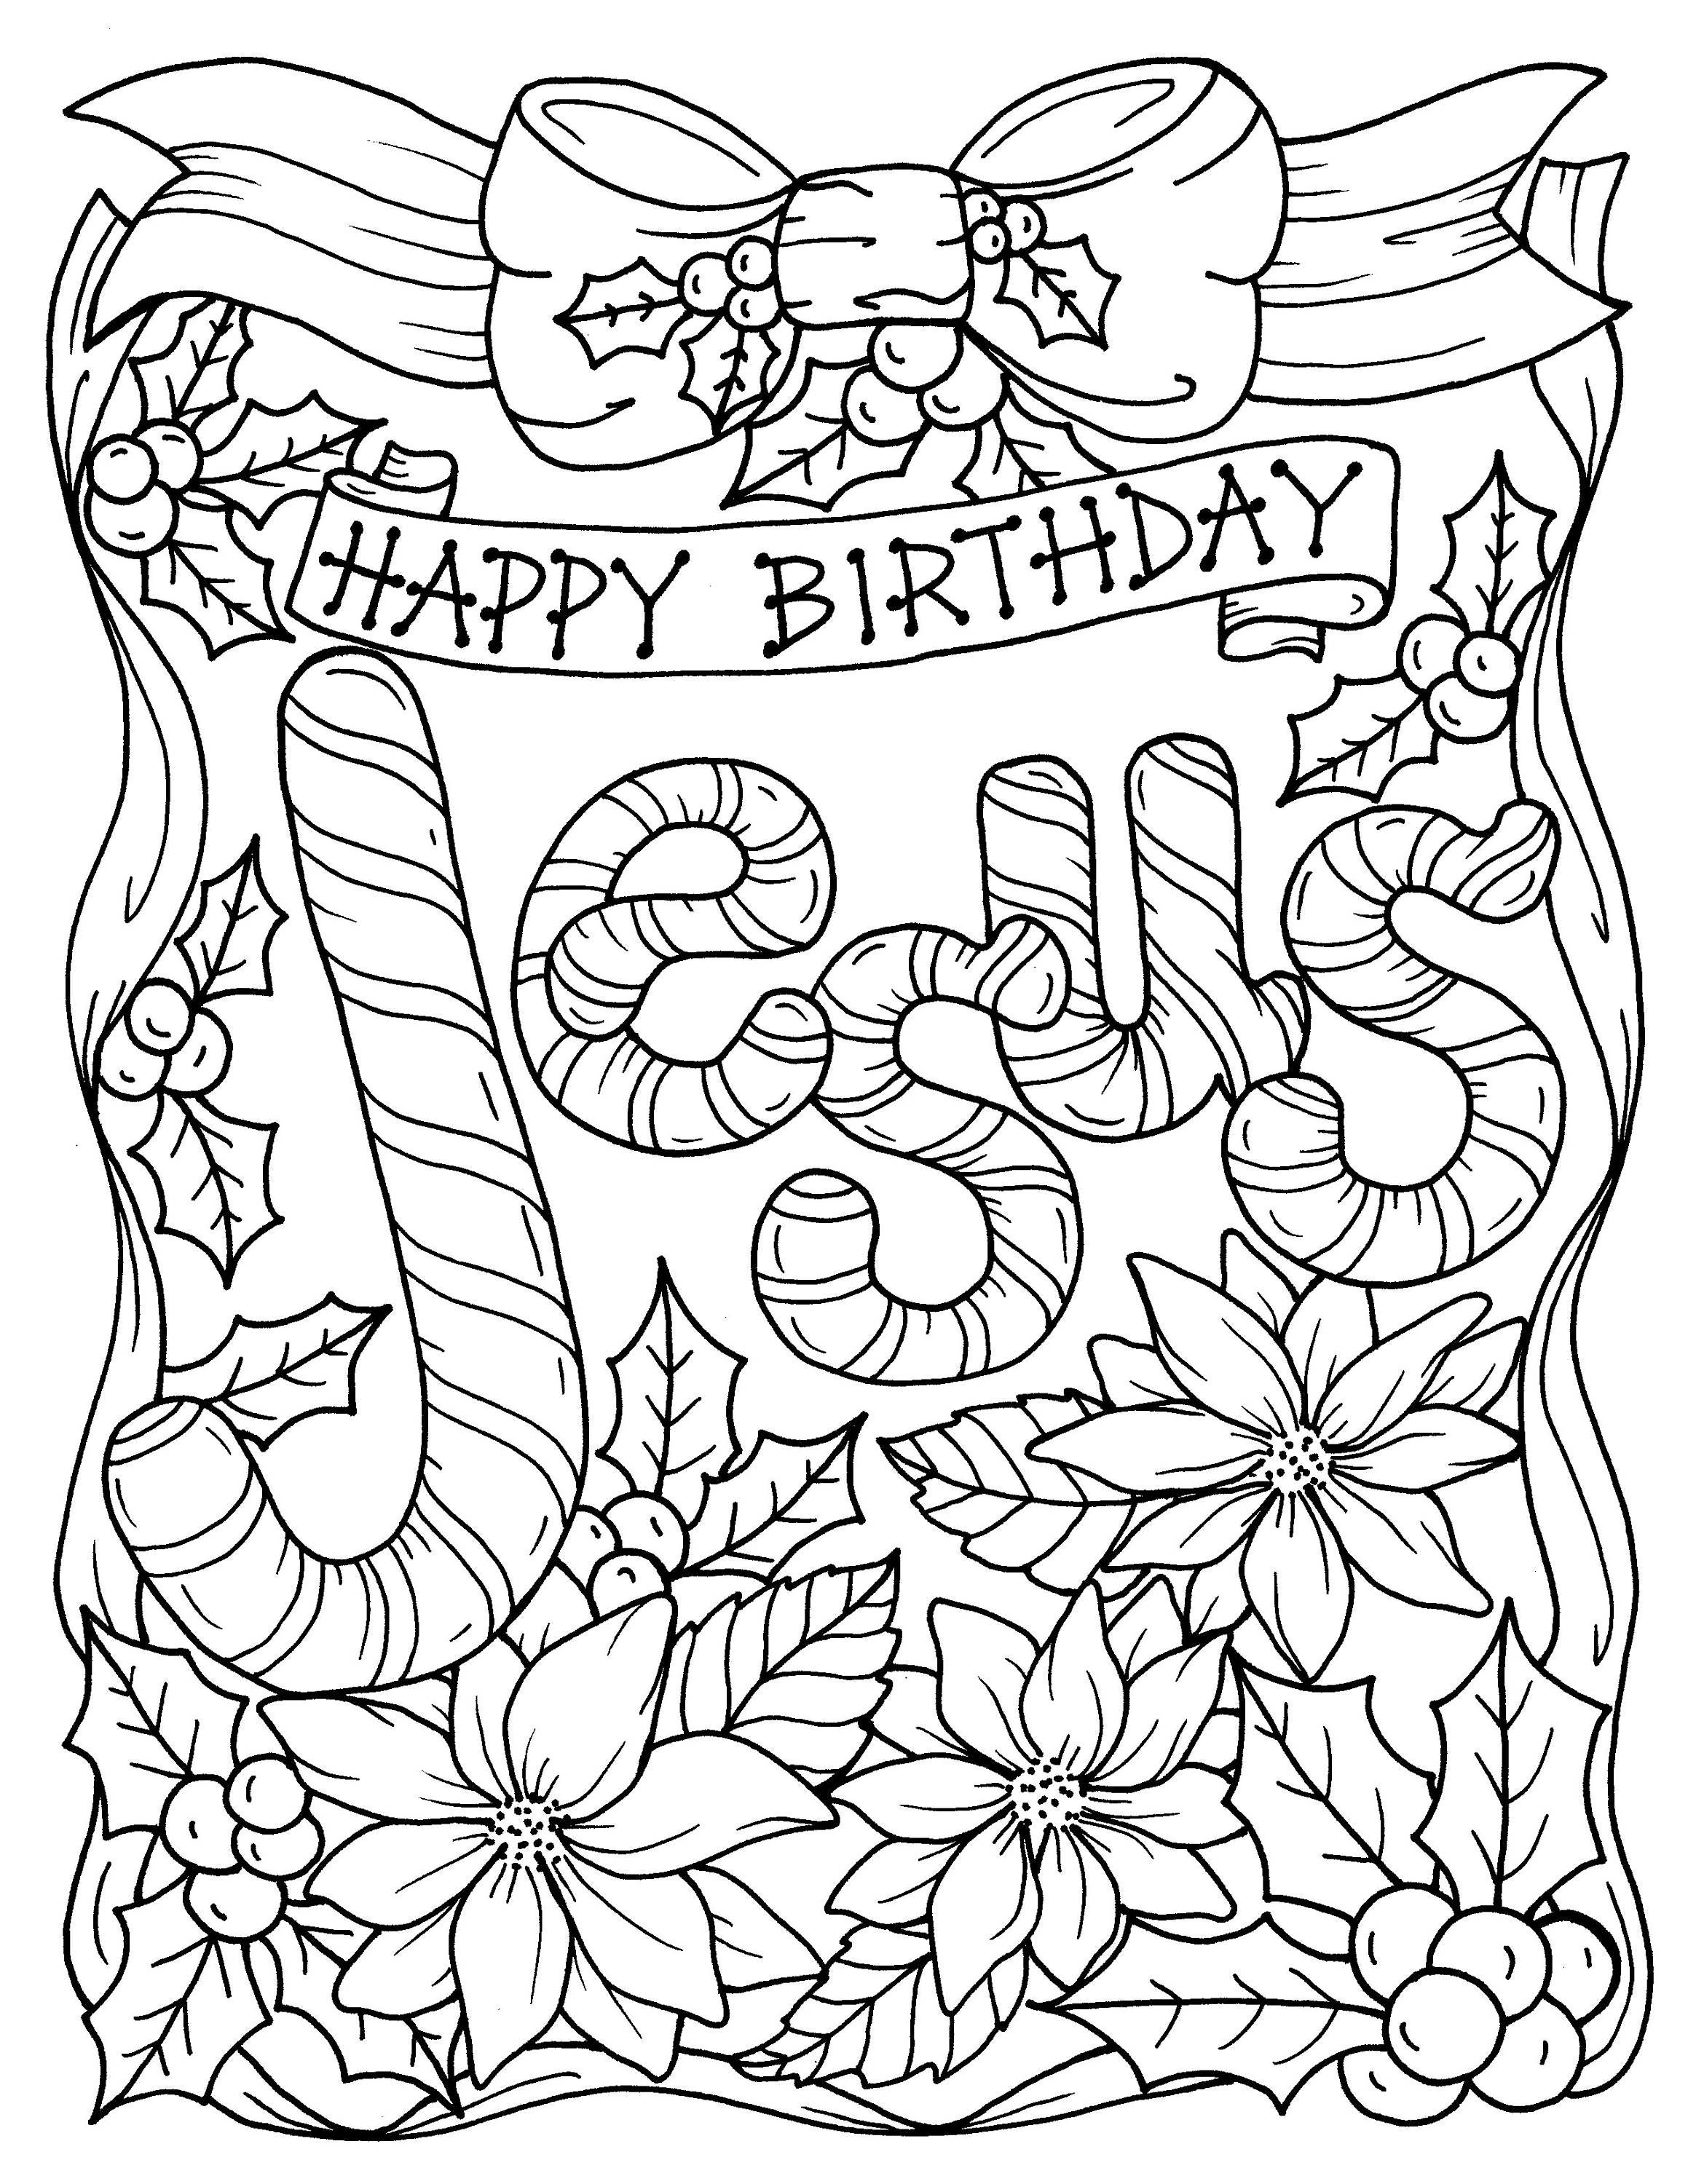 free bible christmas coloring pages | 5 Pages Christmas Coloring Christian Religious scripture ...